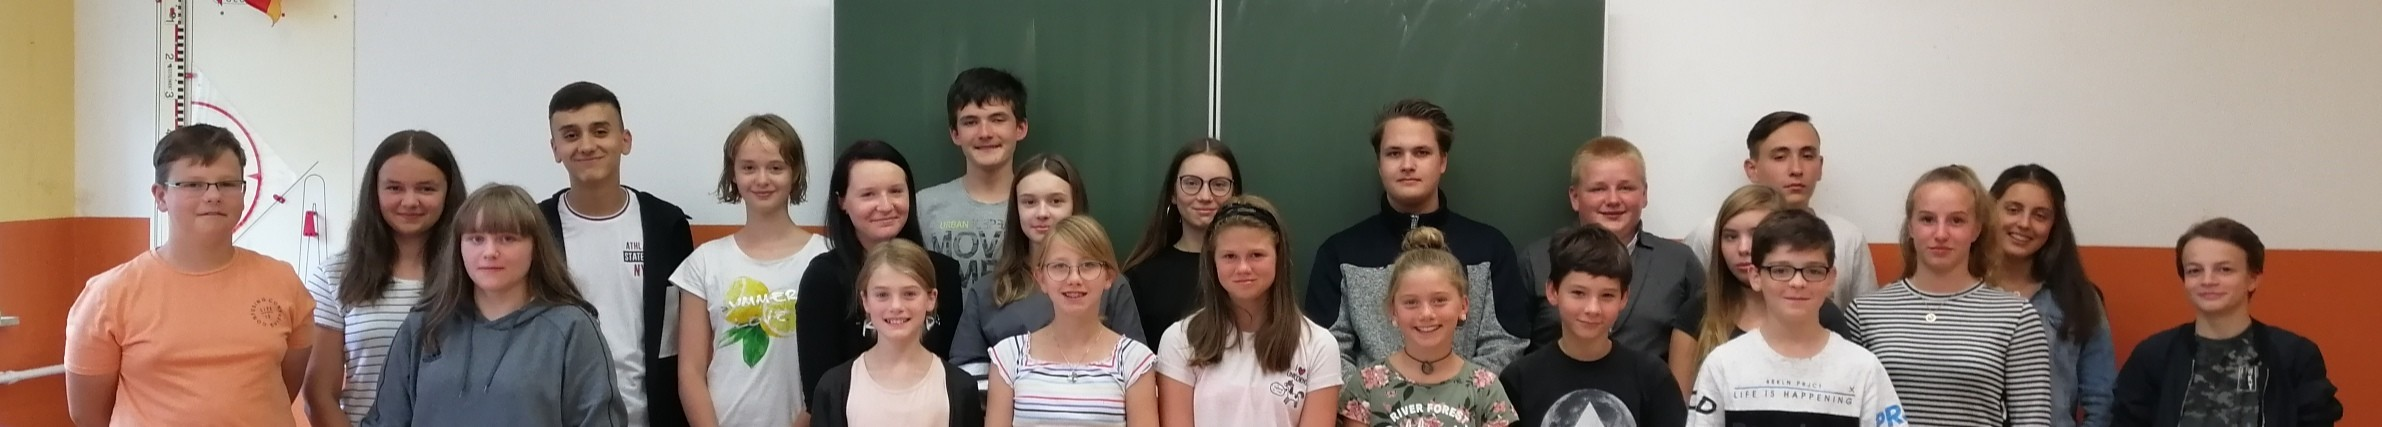 Klassensprecher 2019-2020